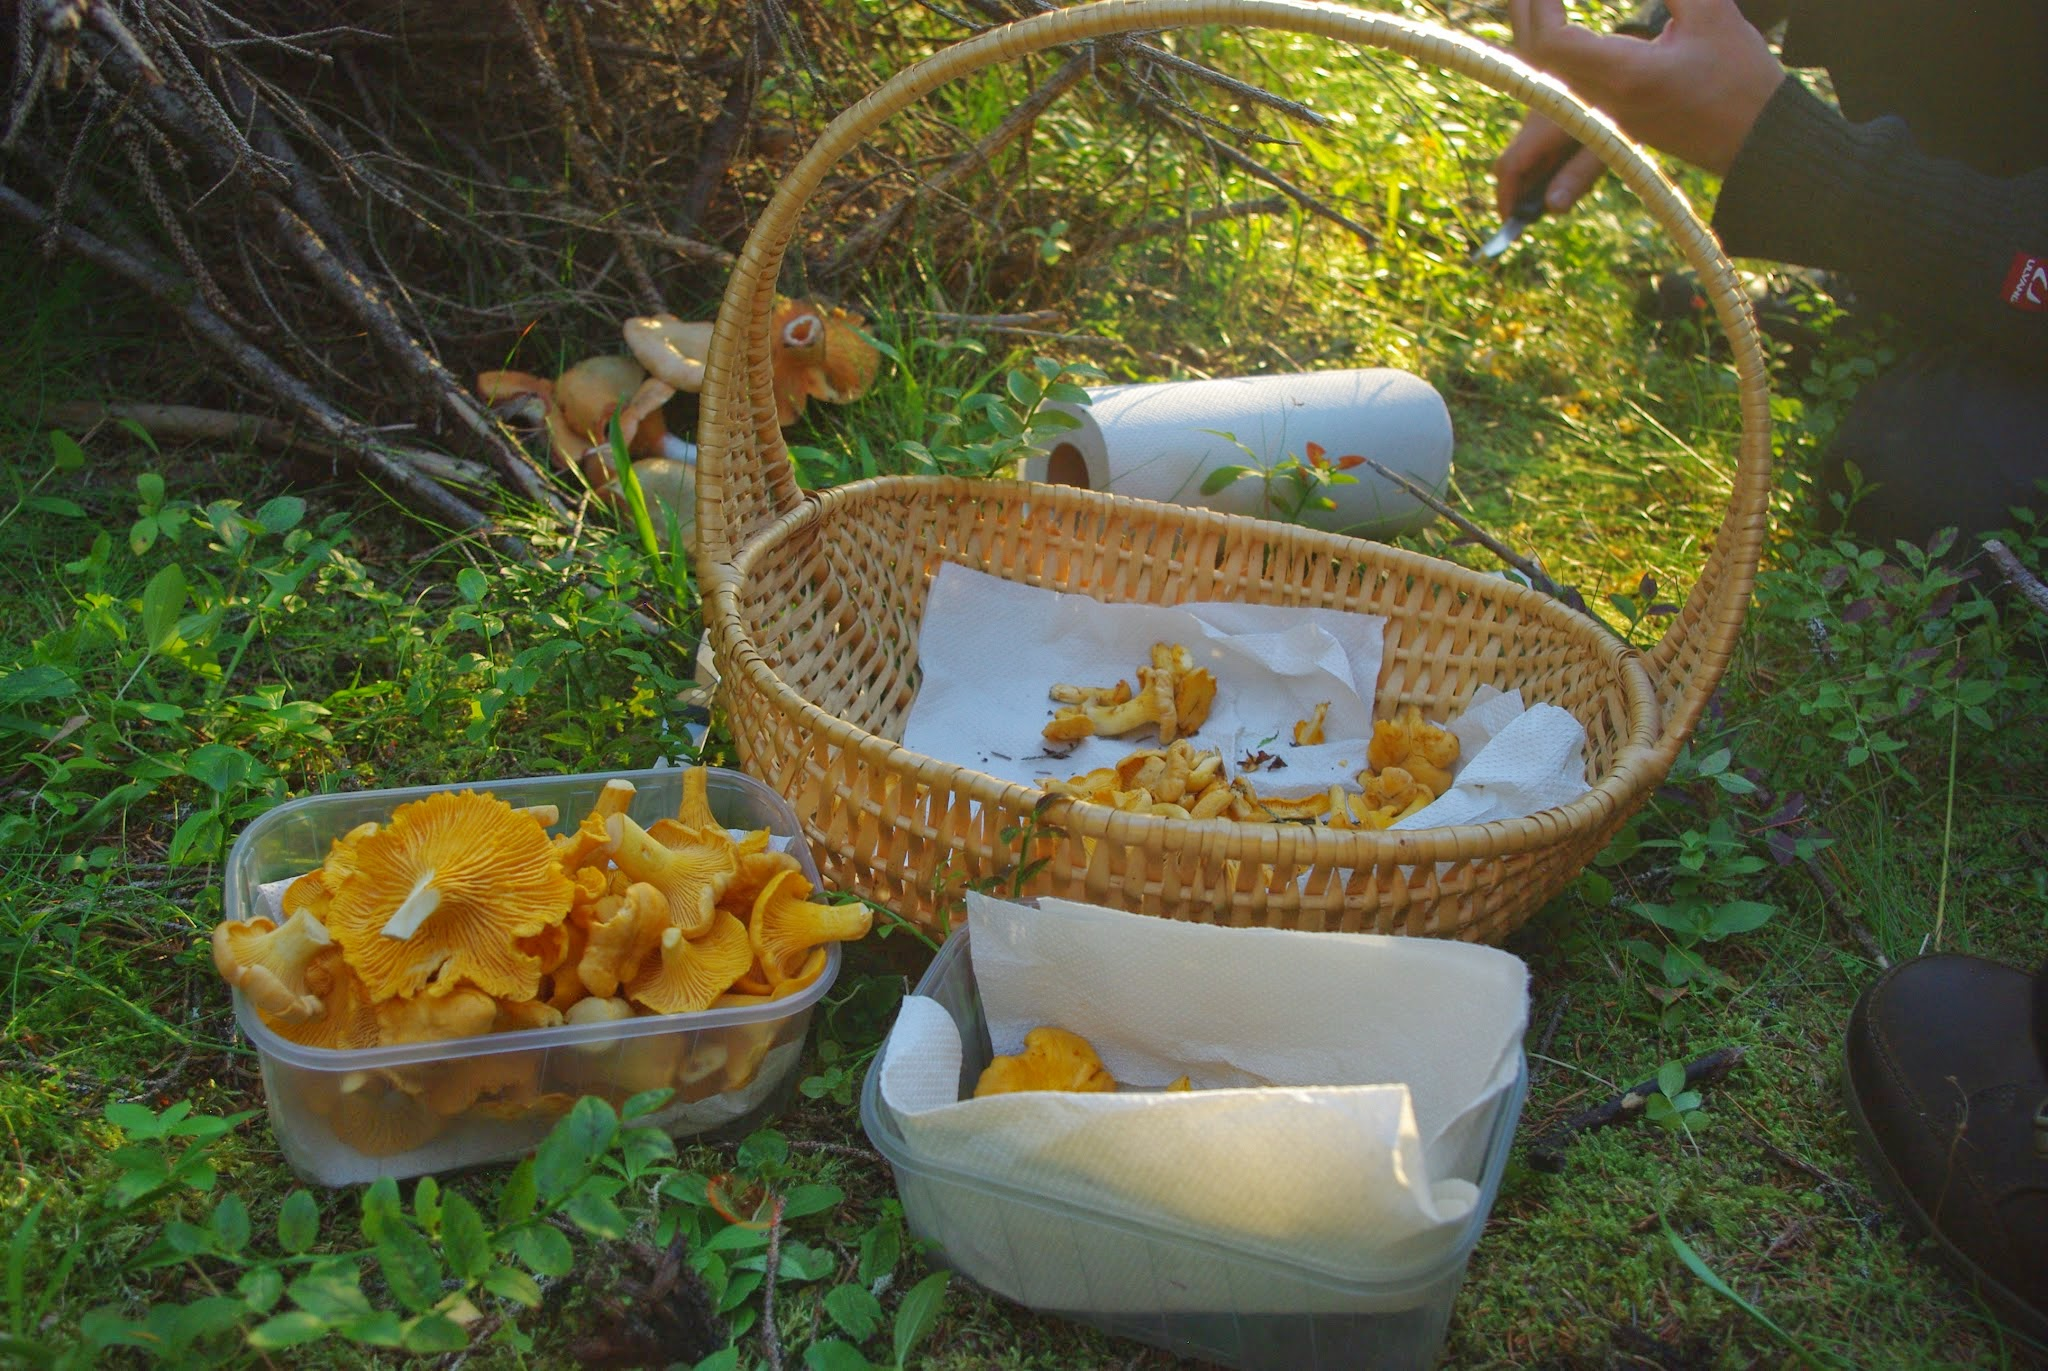 We struck gold! Most of the mushrooms our crew found were the ever-delicious and famous chanterelles. I found a cluster about ten myself and couldn't have been more excited.